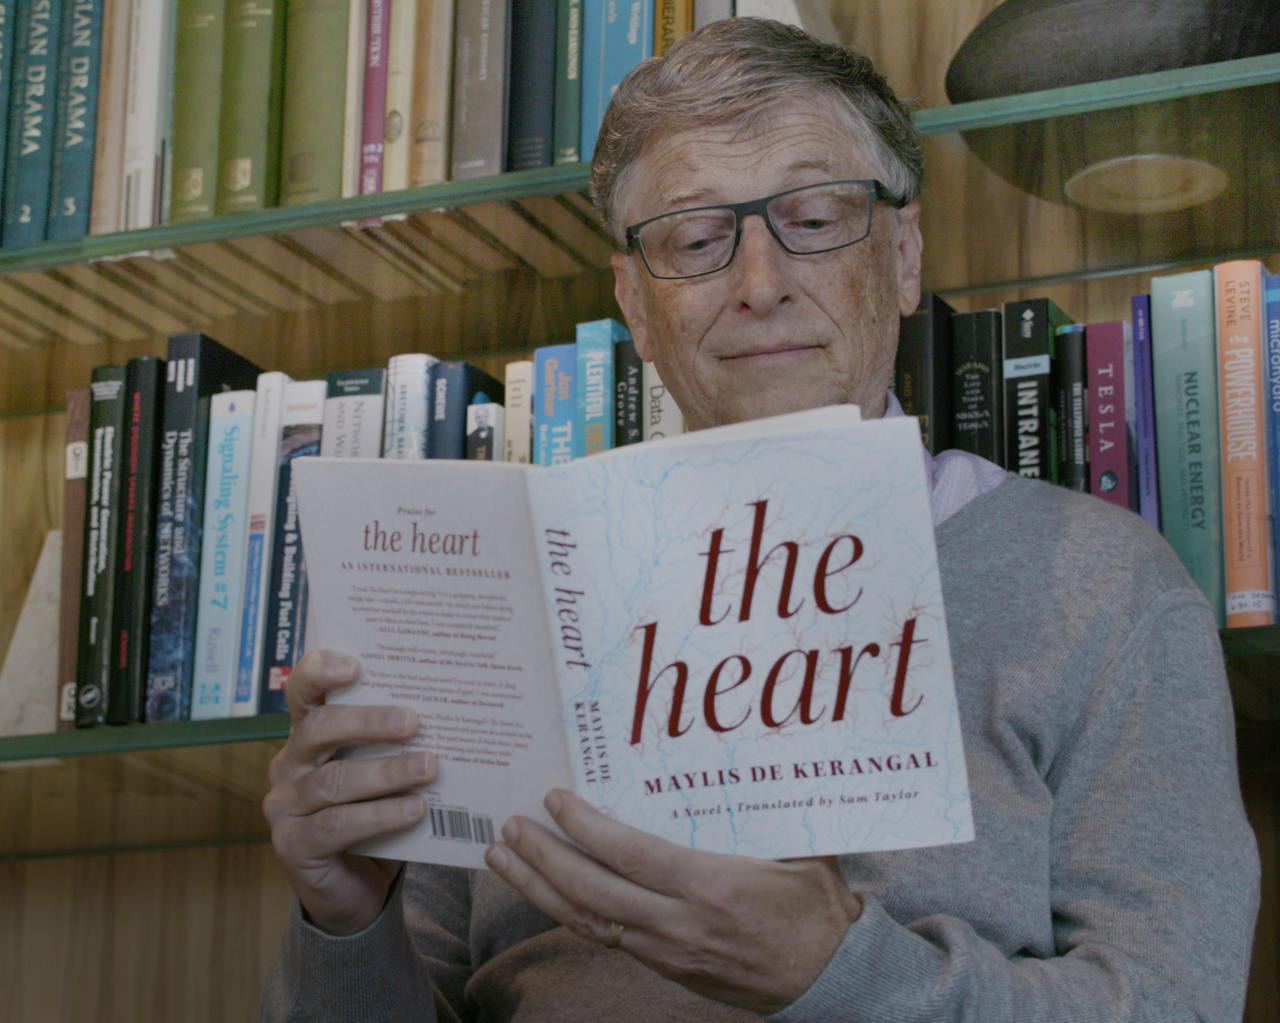 Bill Gates Discusses His Lifelong Love For Books And Reading